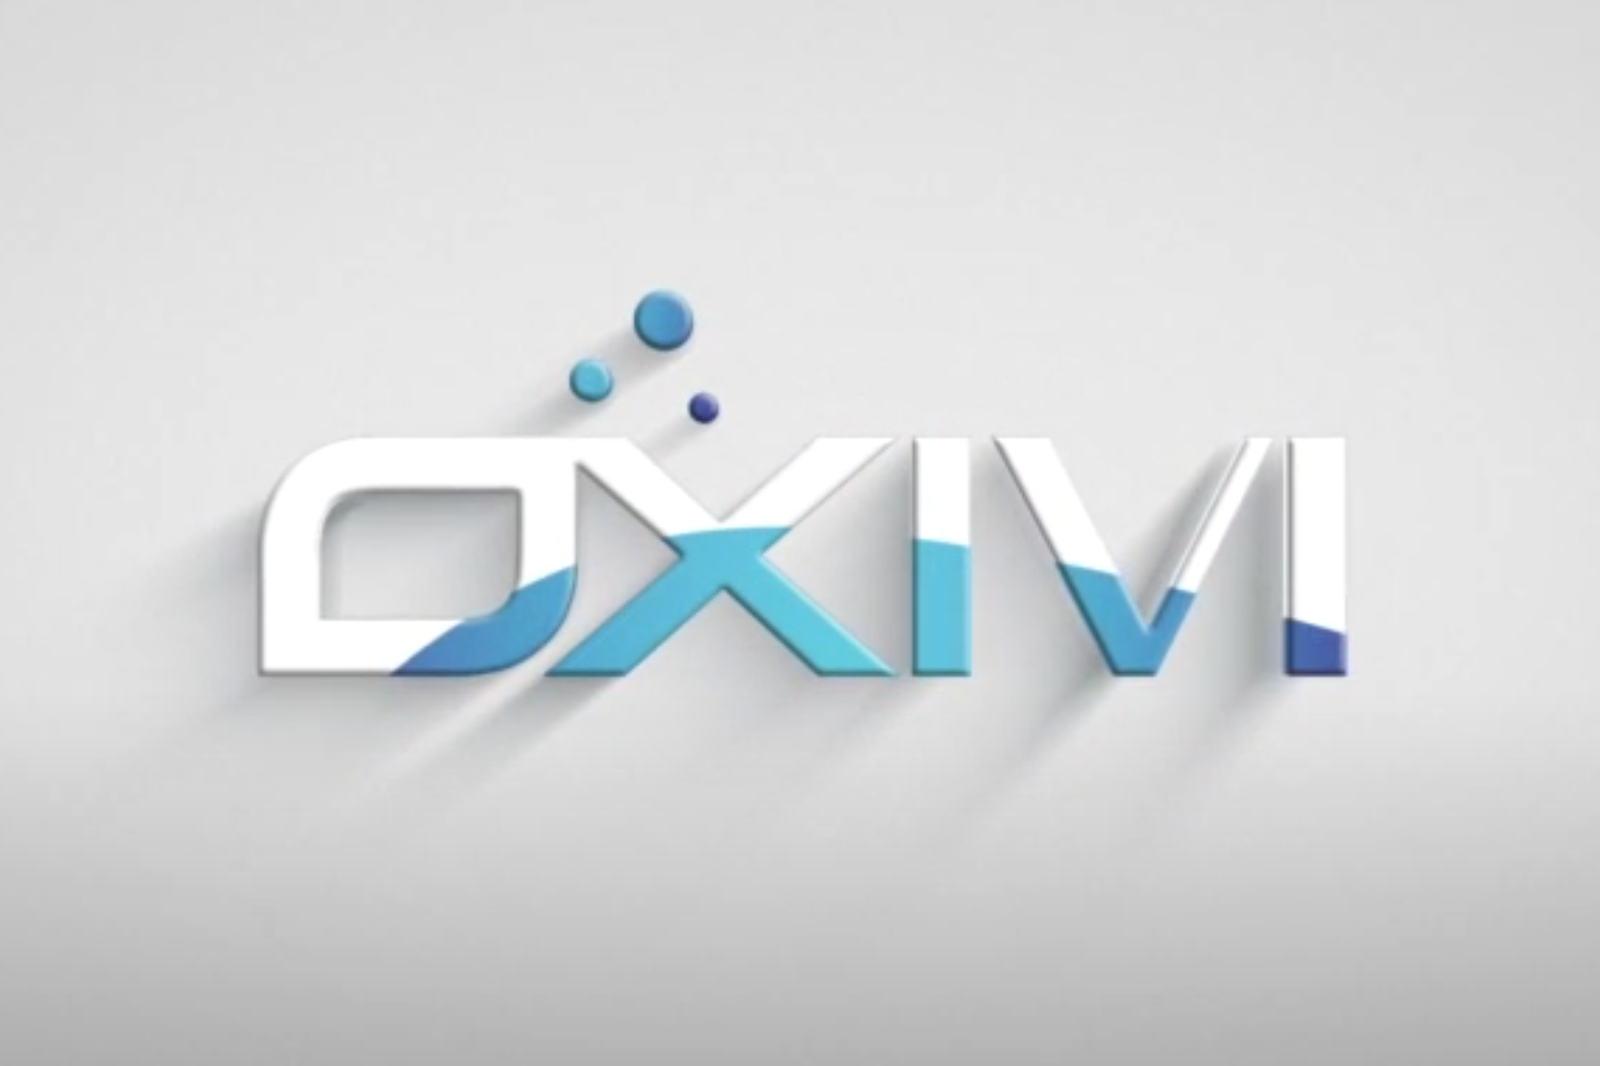 GIG launches OXIVI an emergency ventilator device